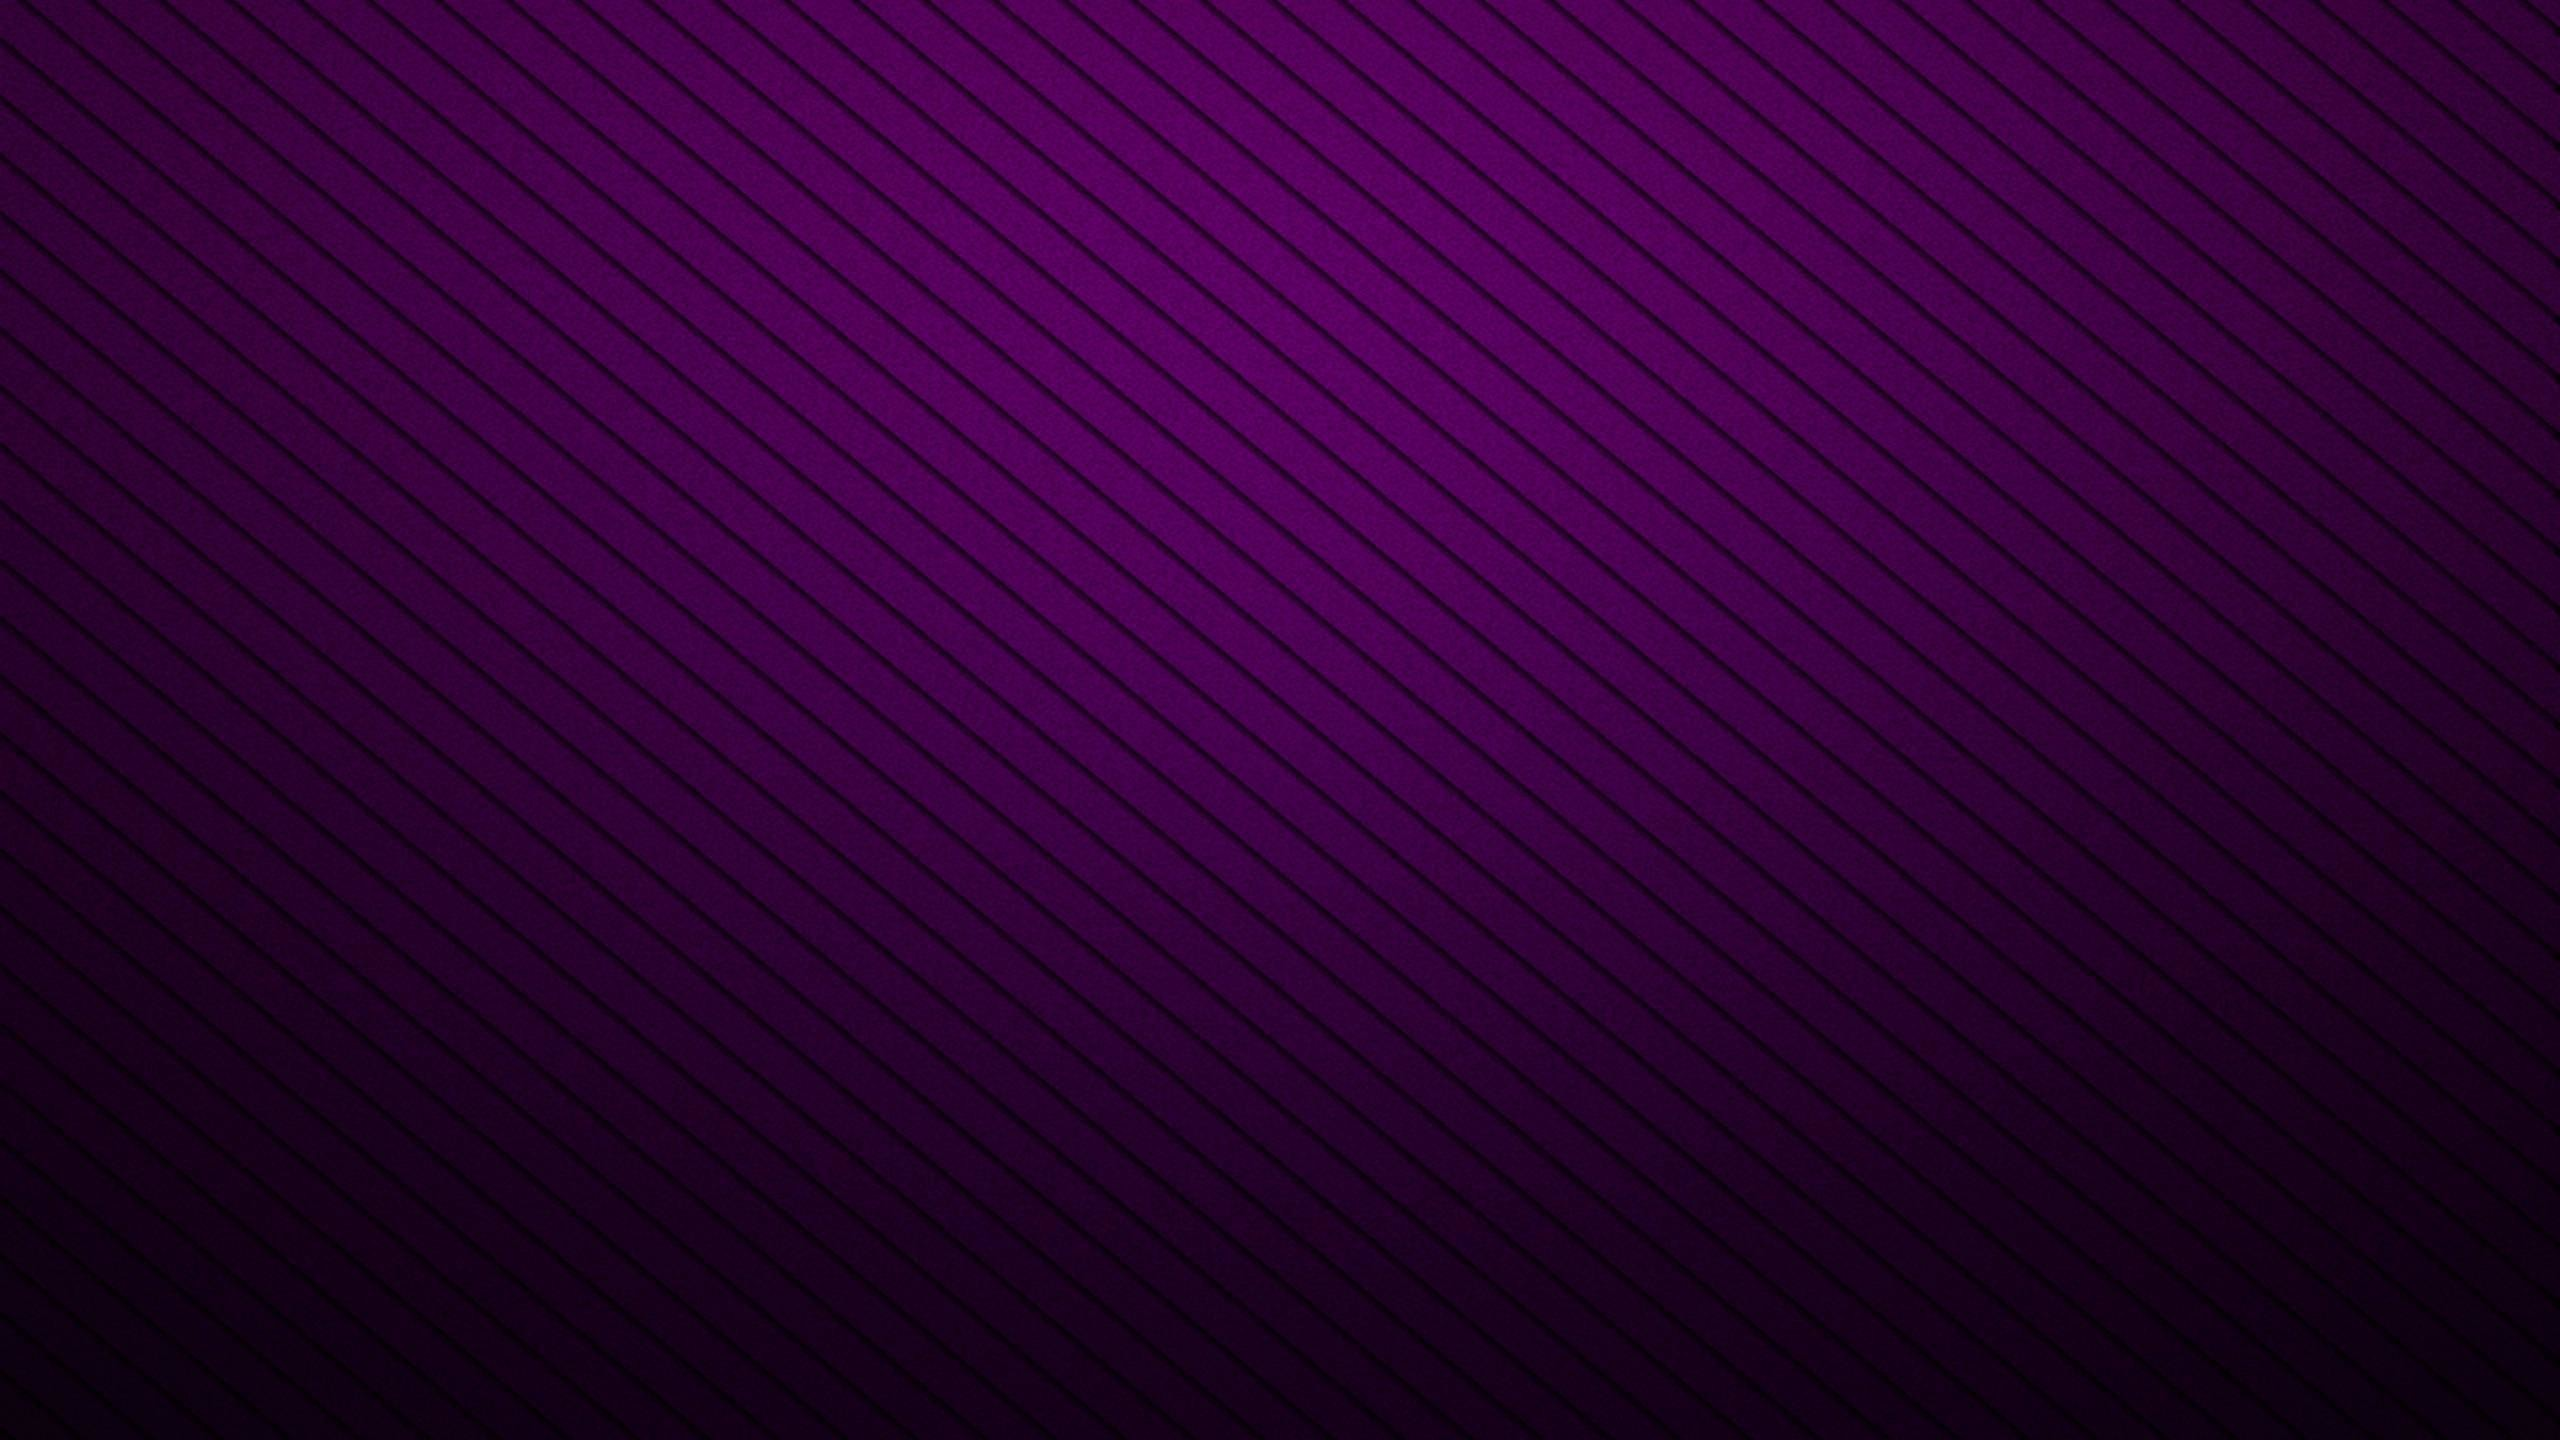 Iphone 5 Wallpaper For Girls Purple And Black Wallpaper 75 Images